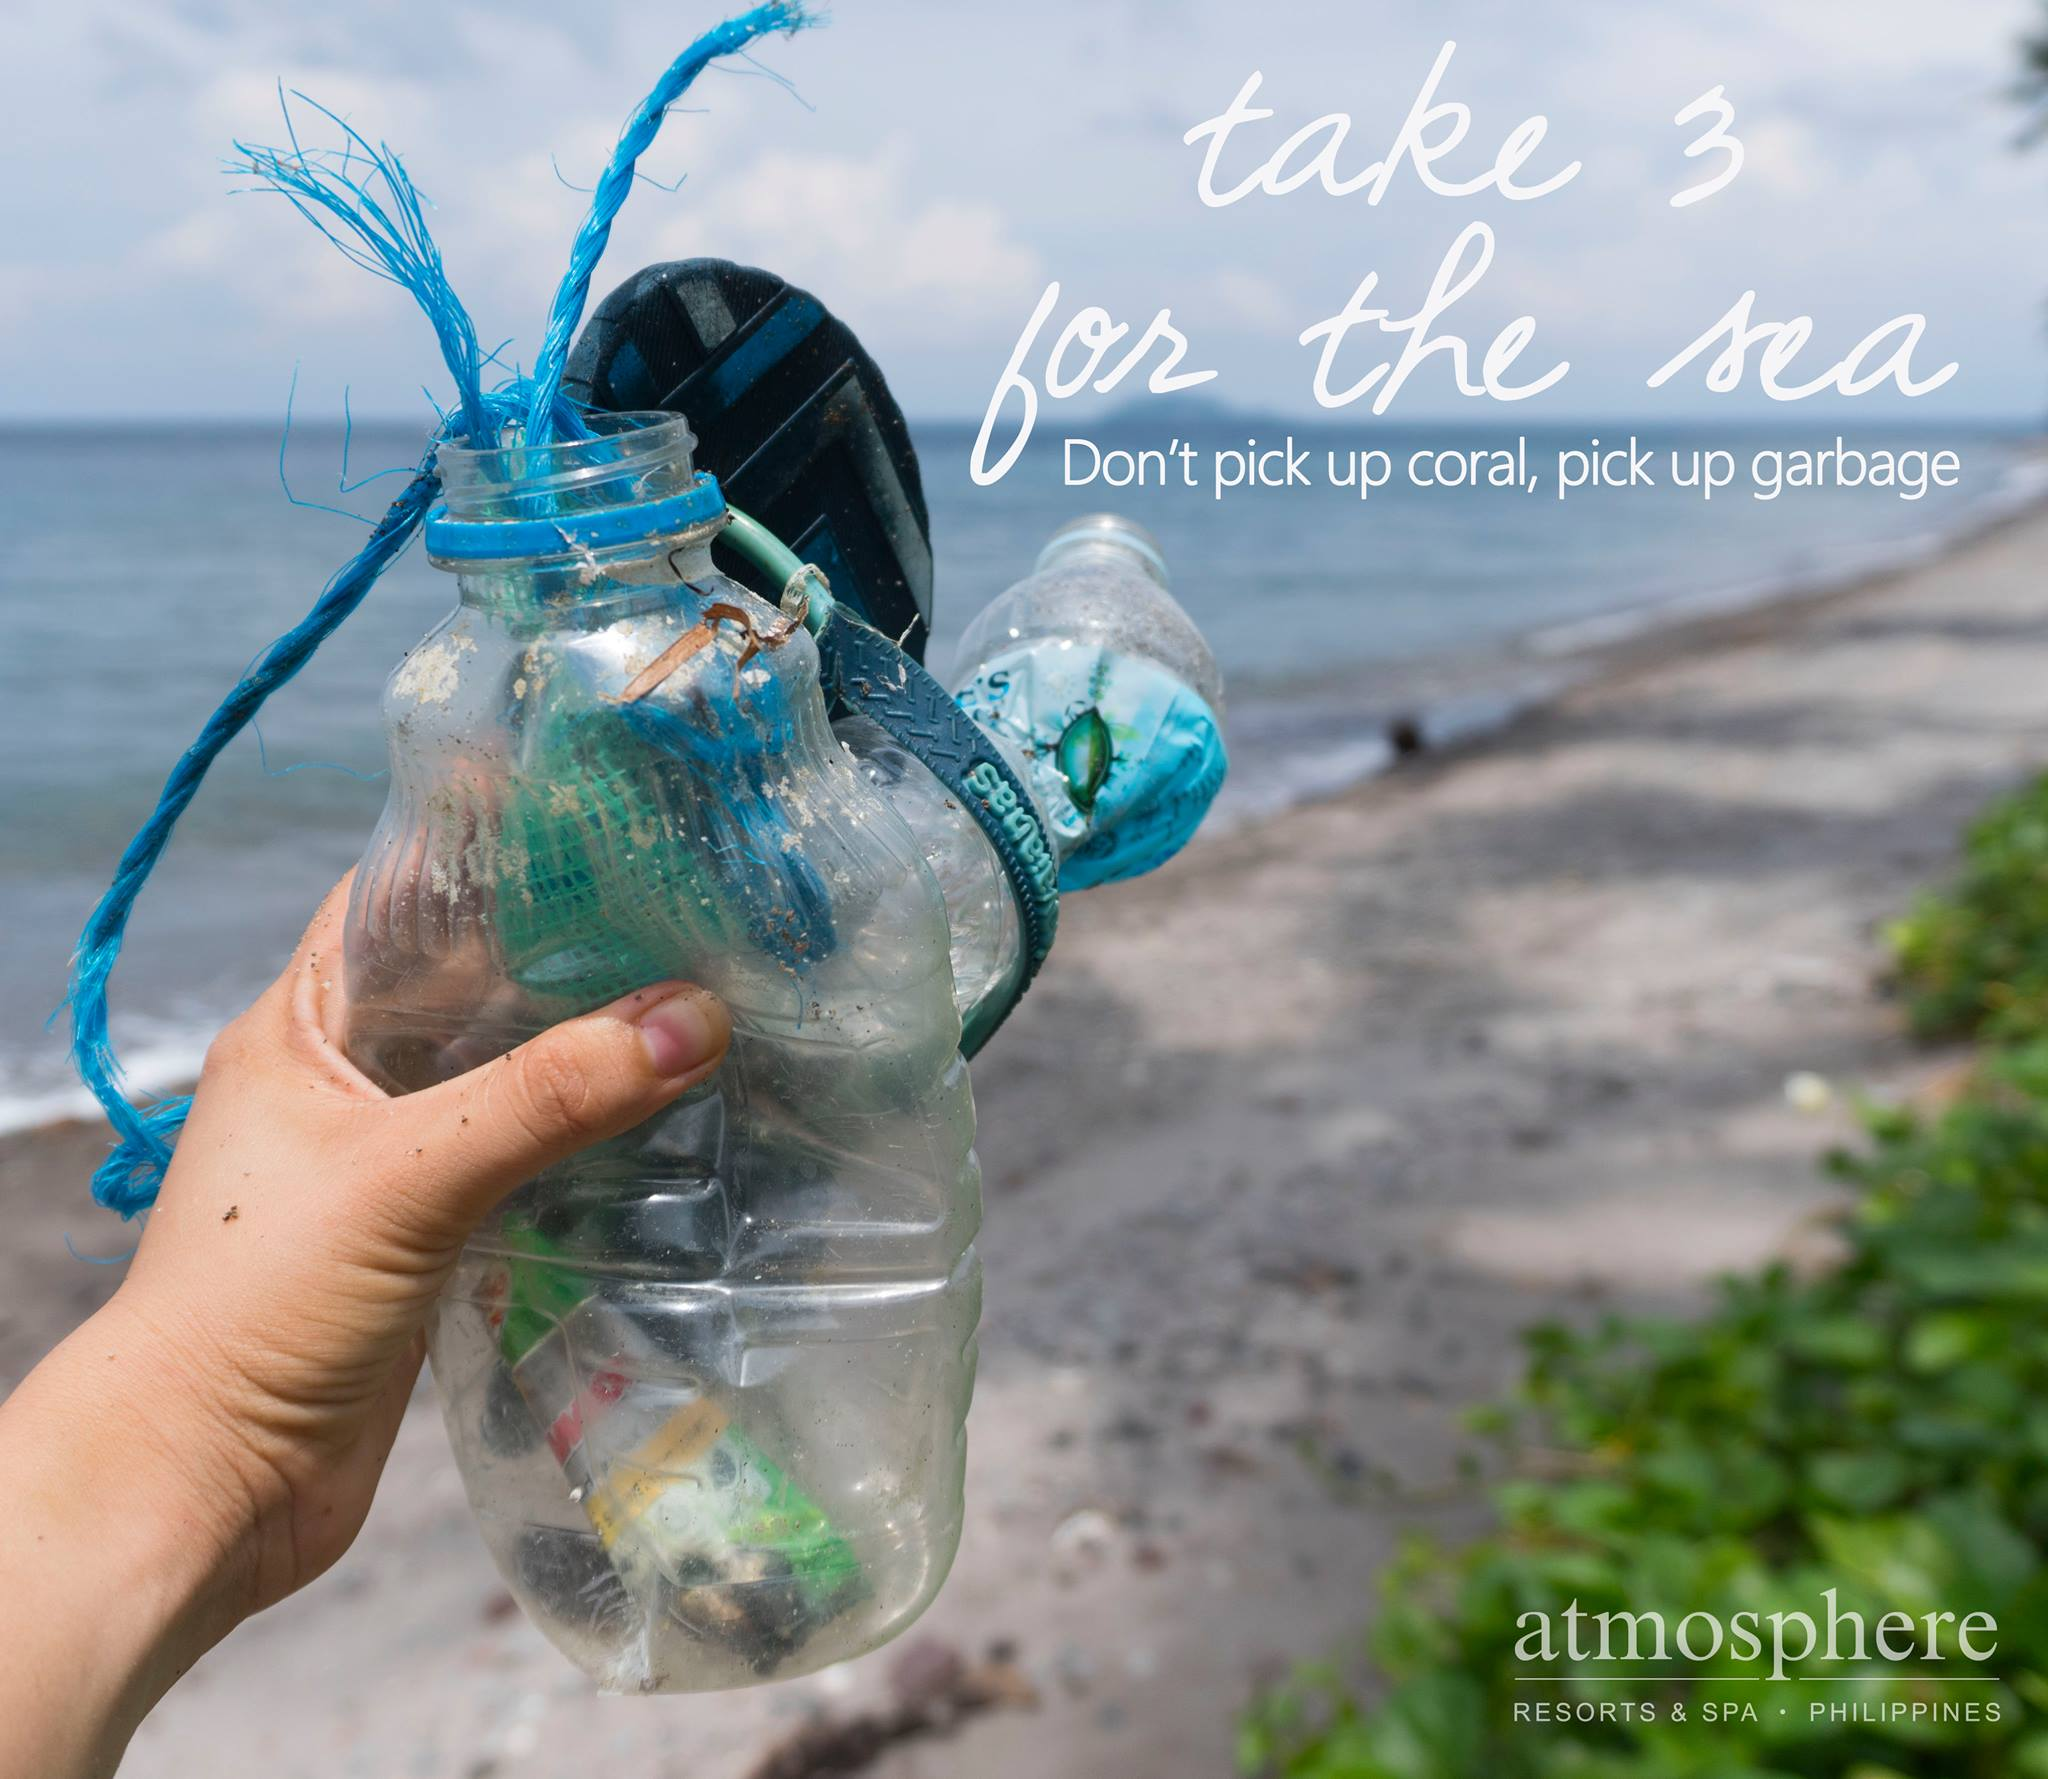 Atmosphere Resorts taking eco action - take 3 for the sea